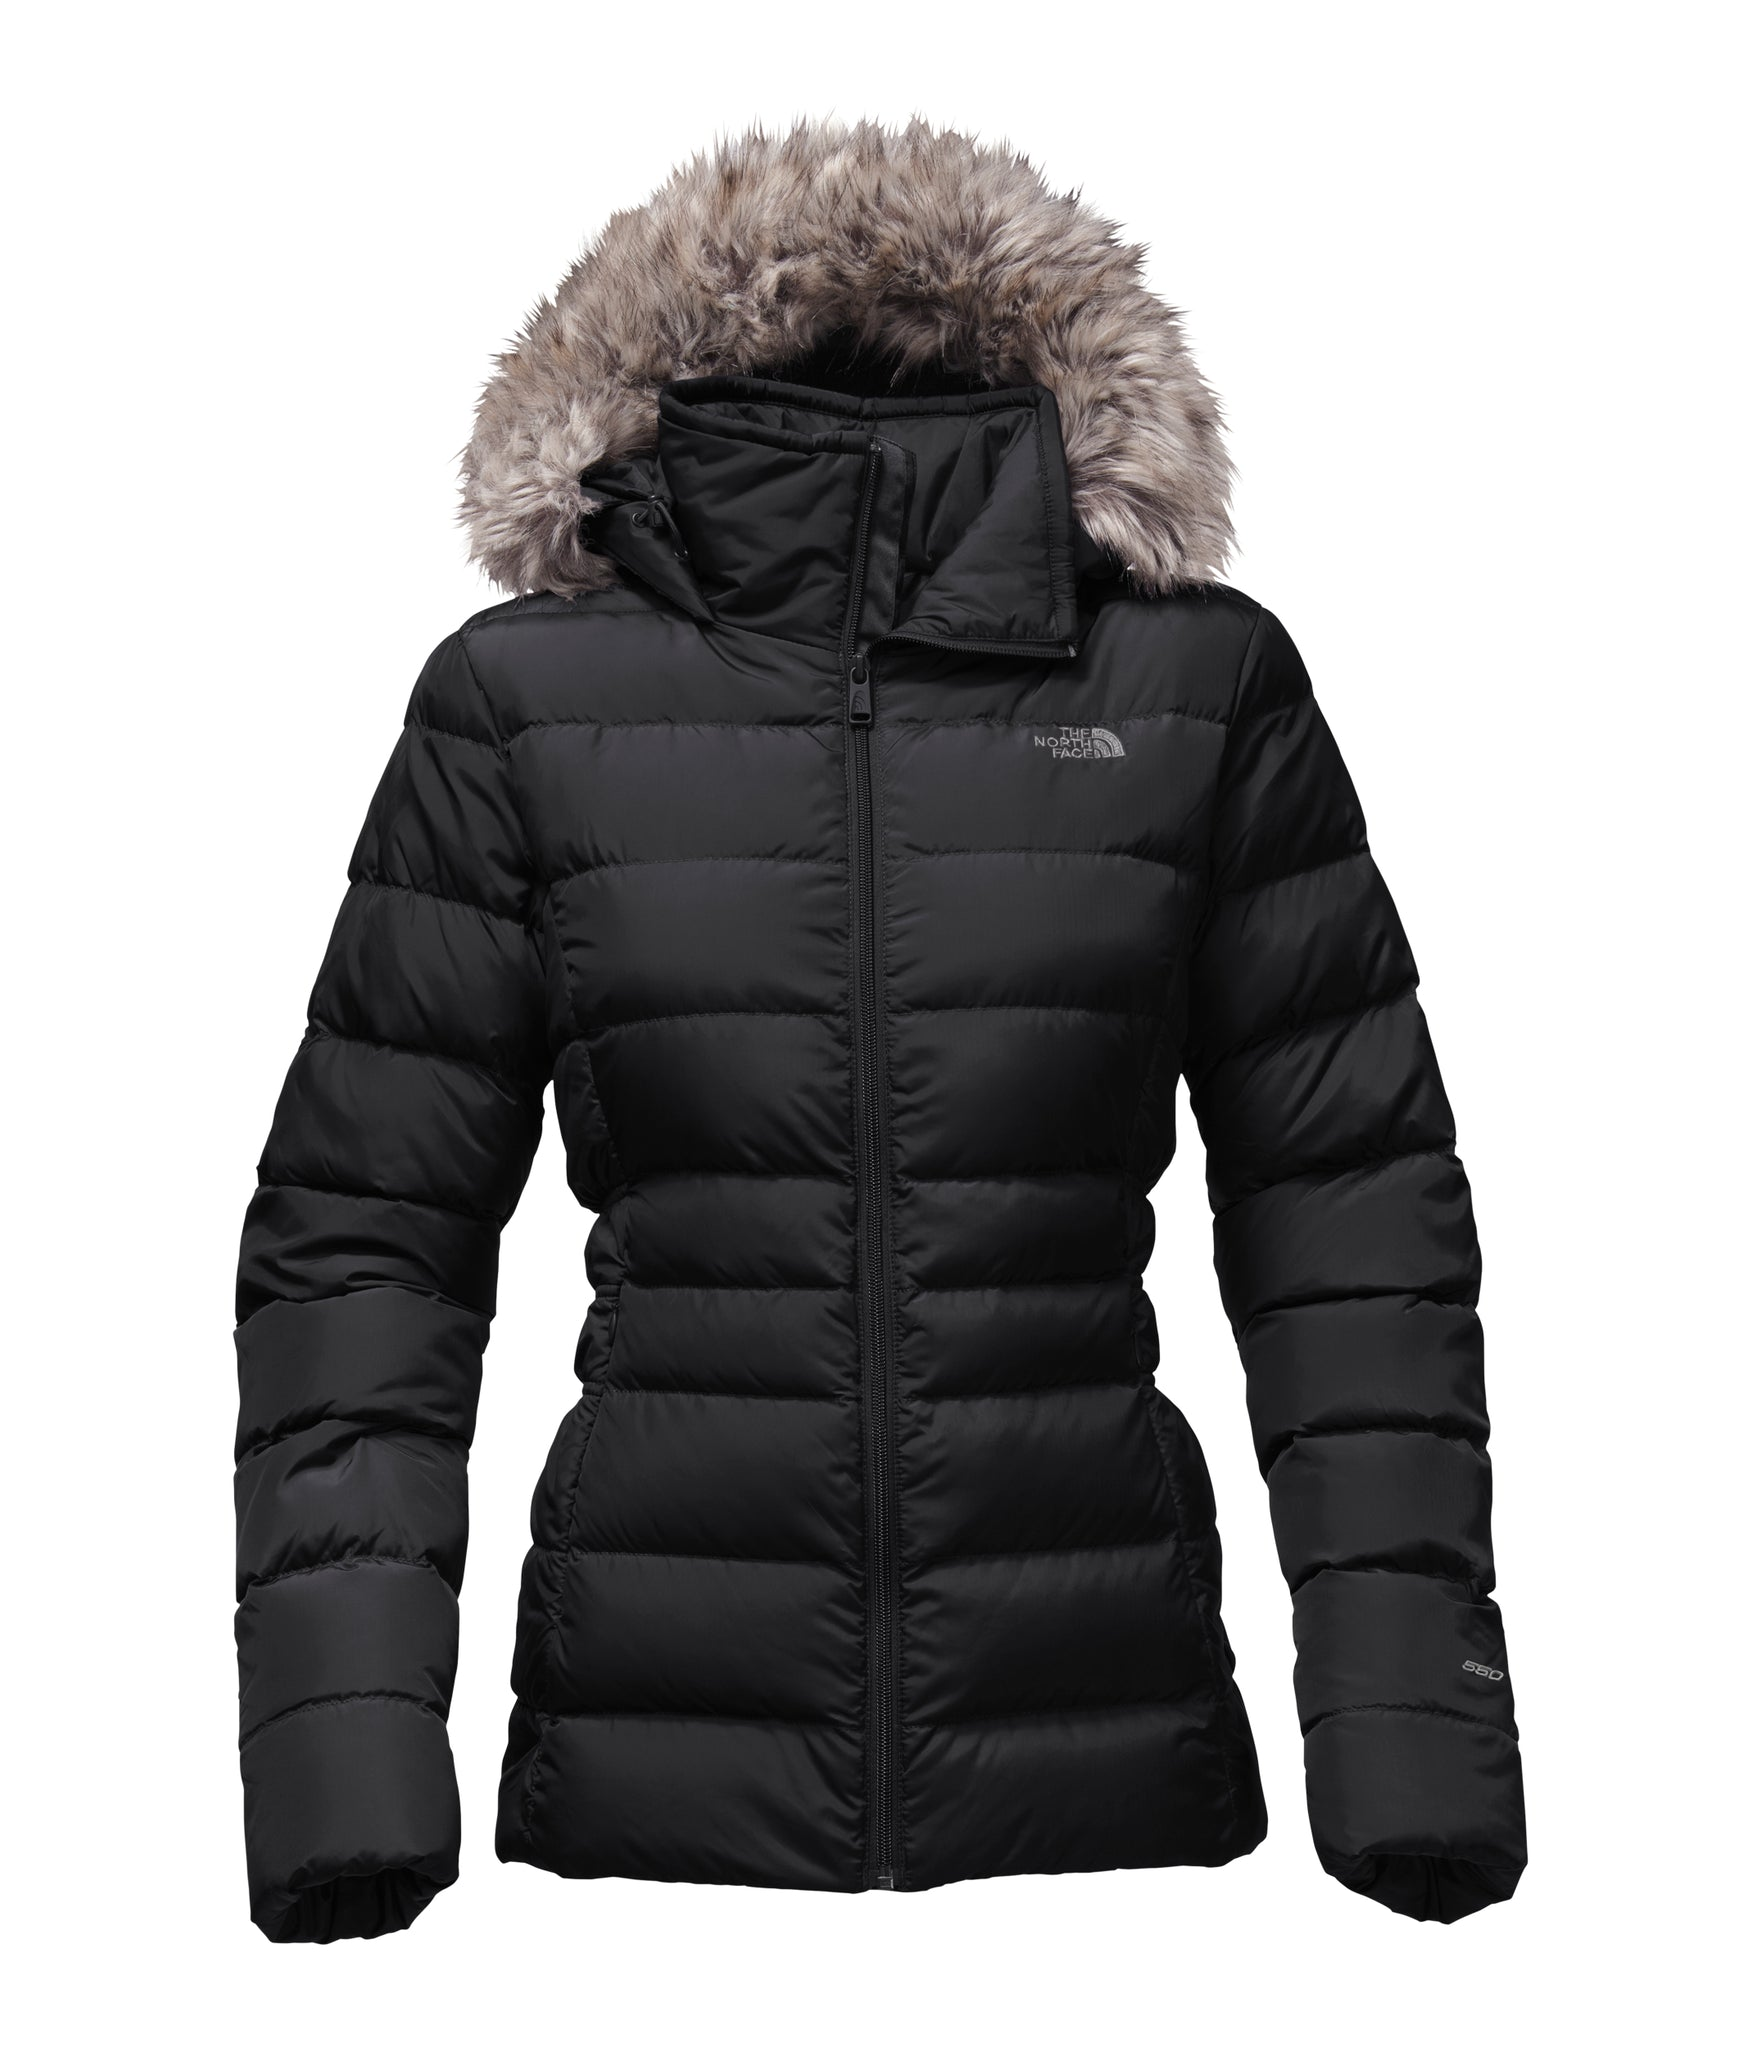 ... usa the north face womens gotham jacket ii in tnf black 56118 dc648 04b455eed